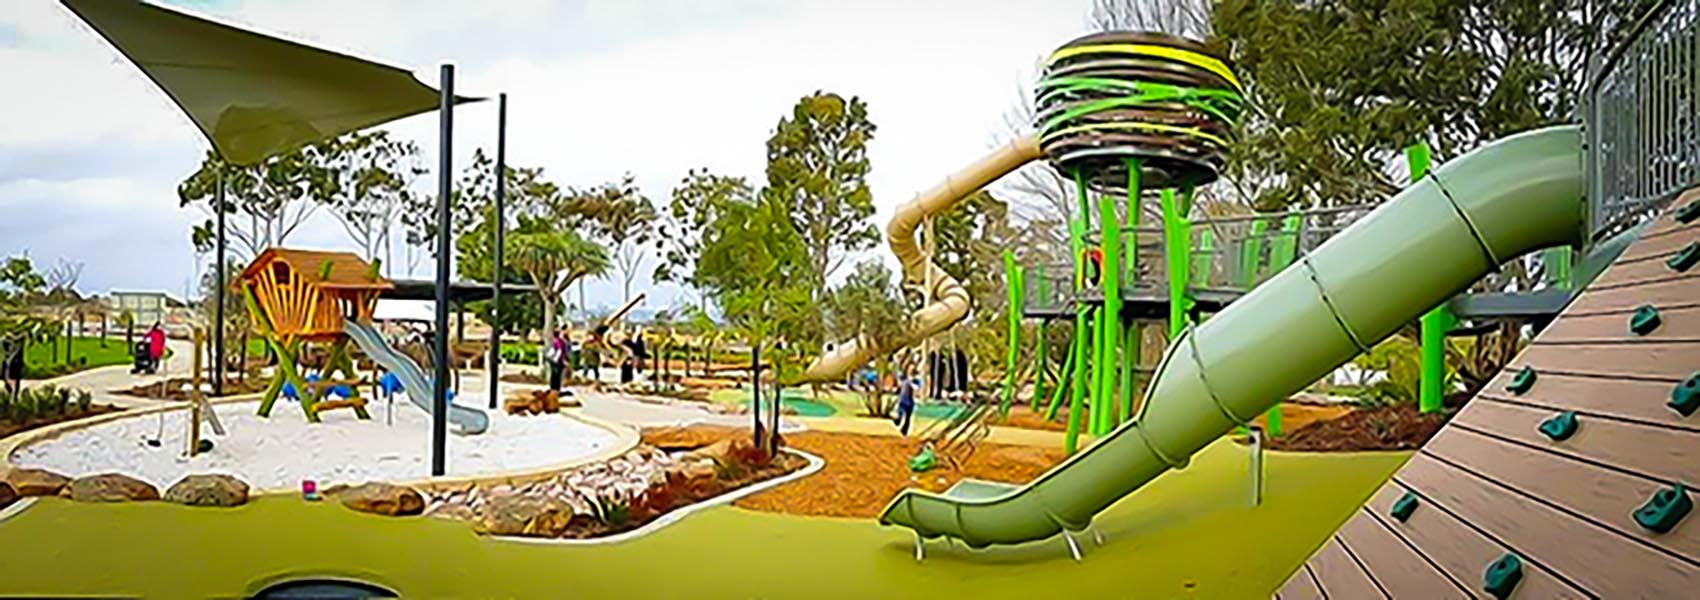 Jungle Park in Brabham is one of Perth's best playgrounds for kids and families